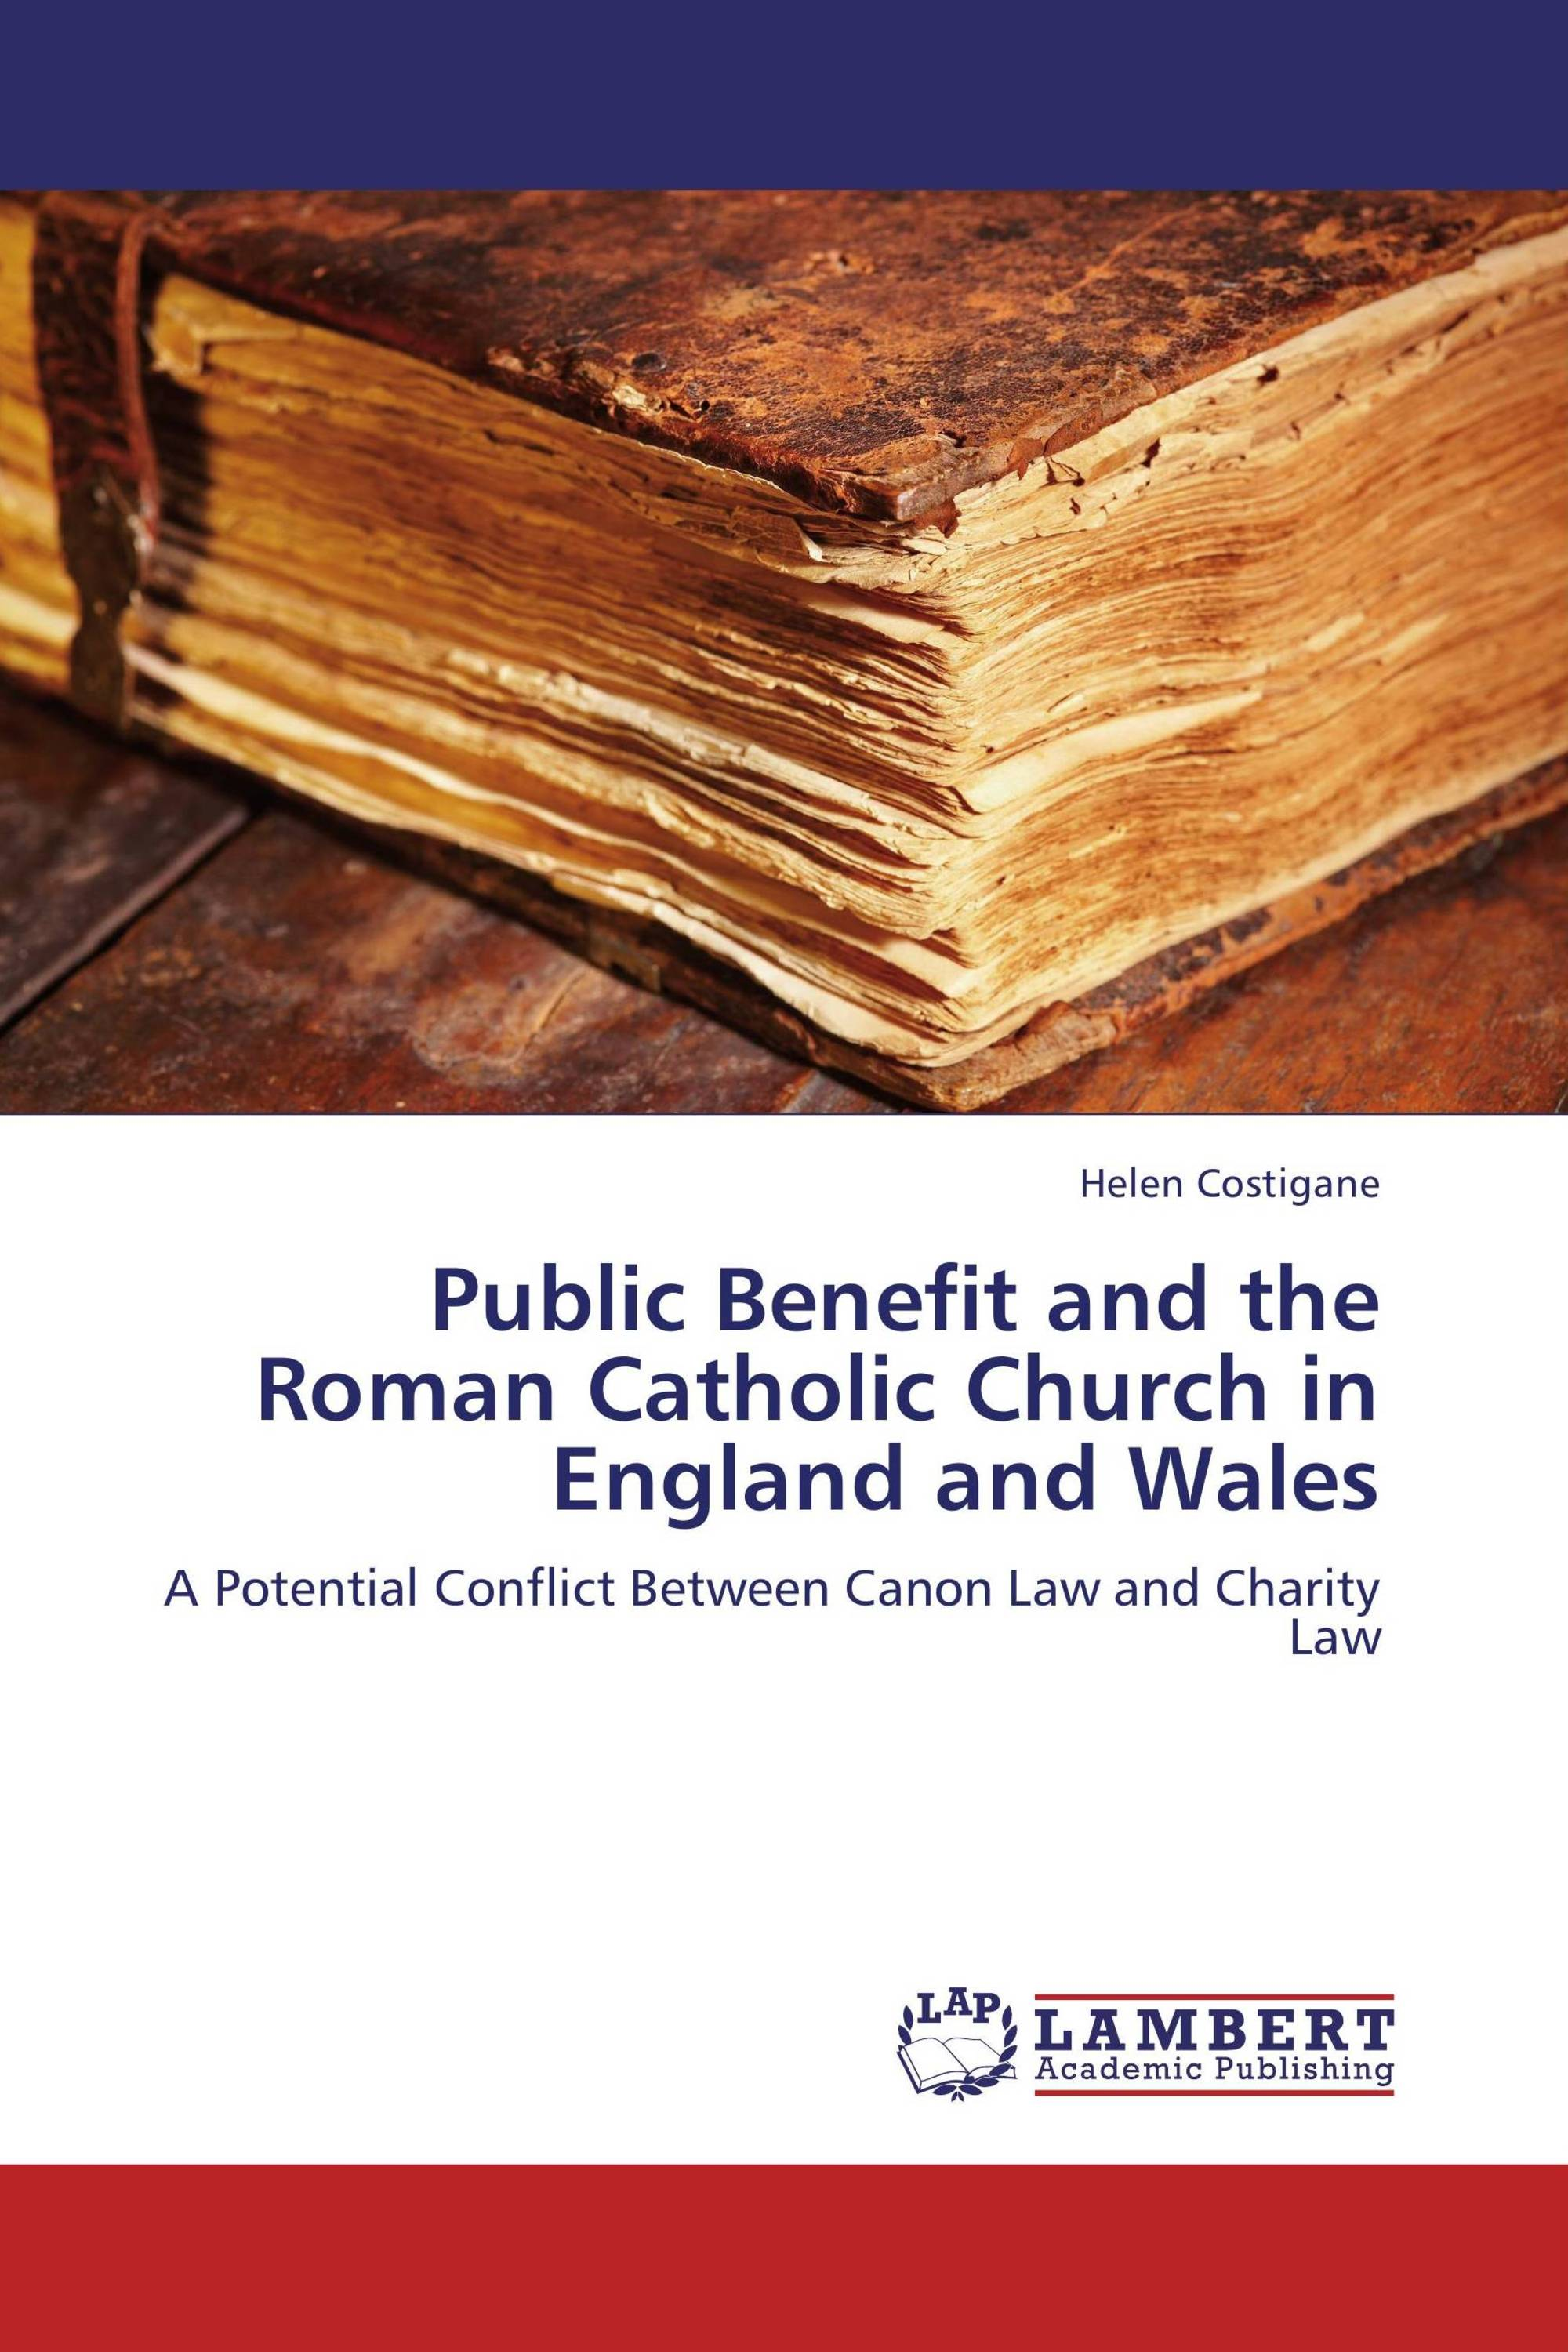 Public Benefit and the Roman Catholic Church in England and Wales